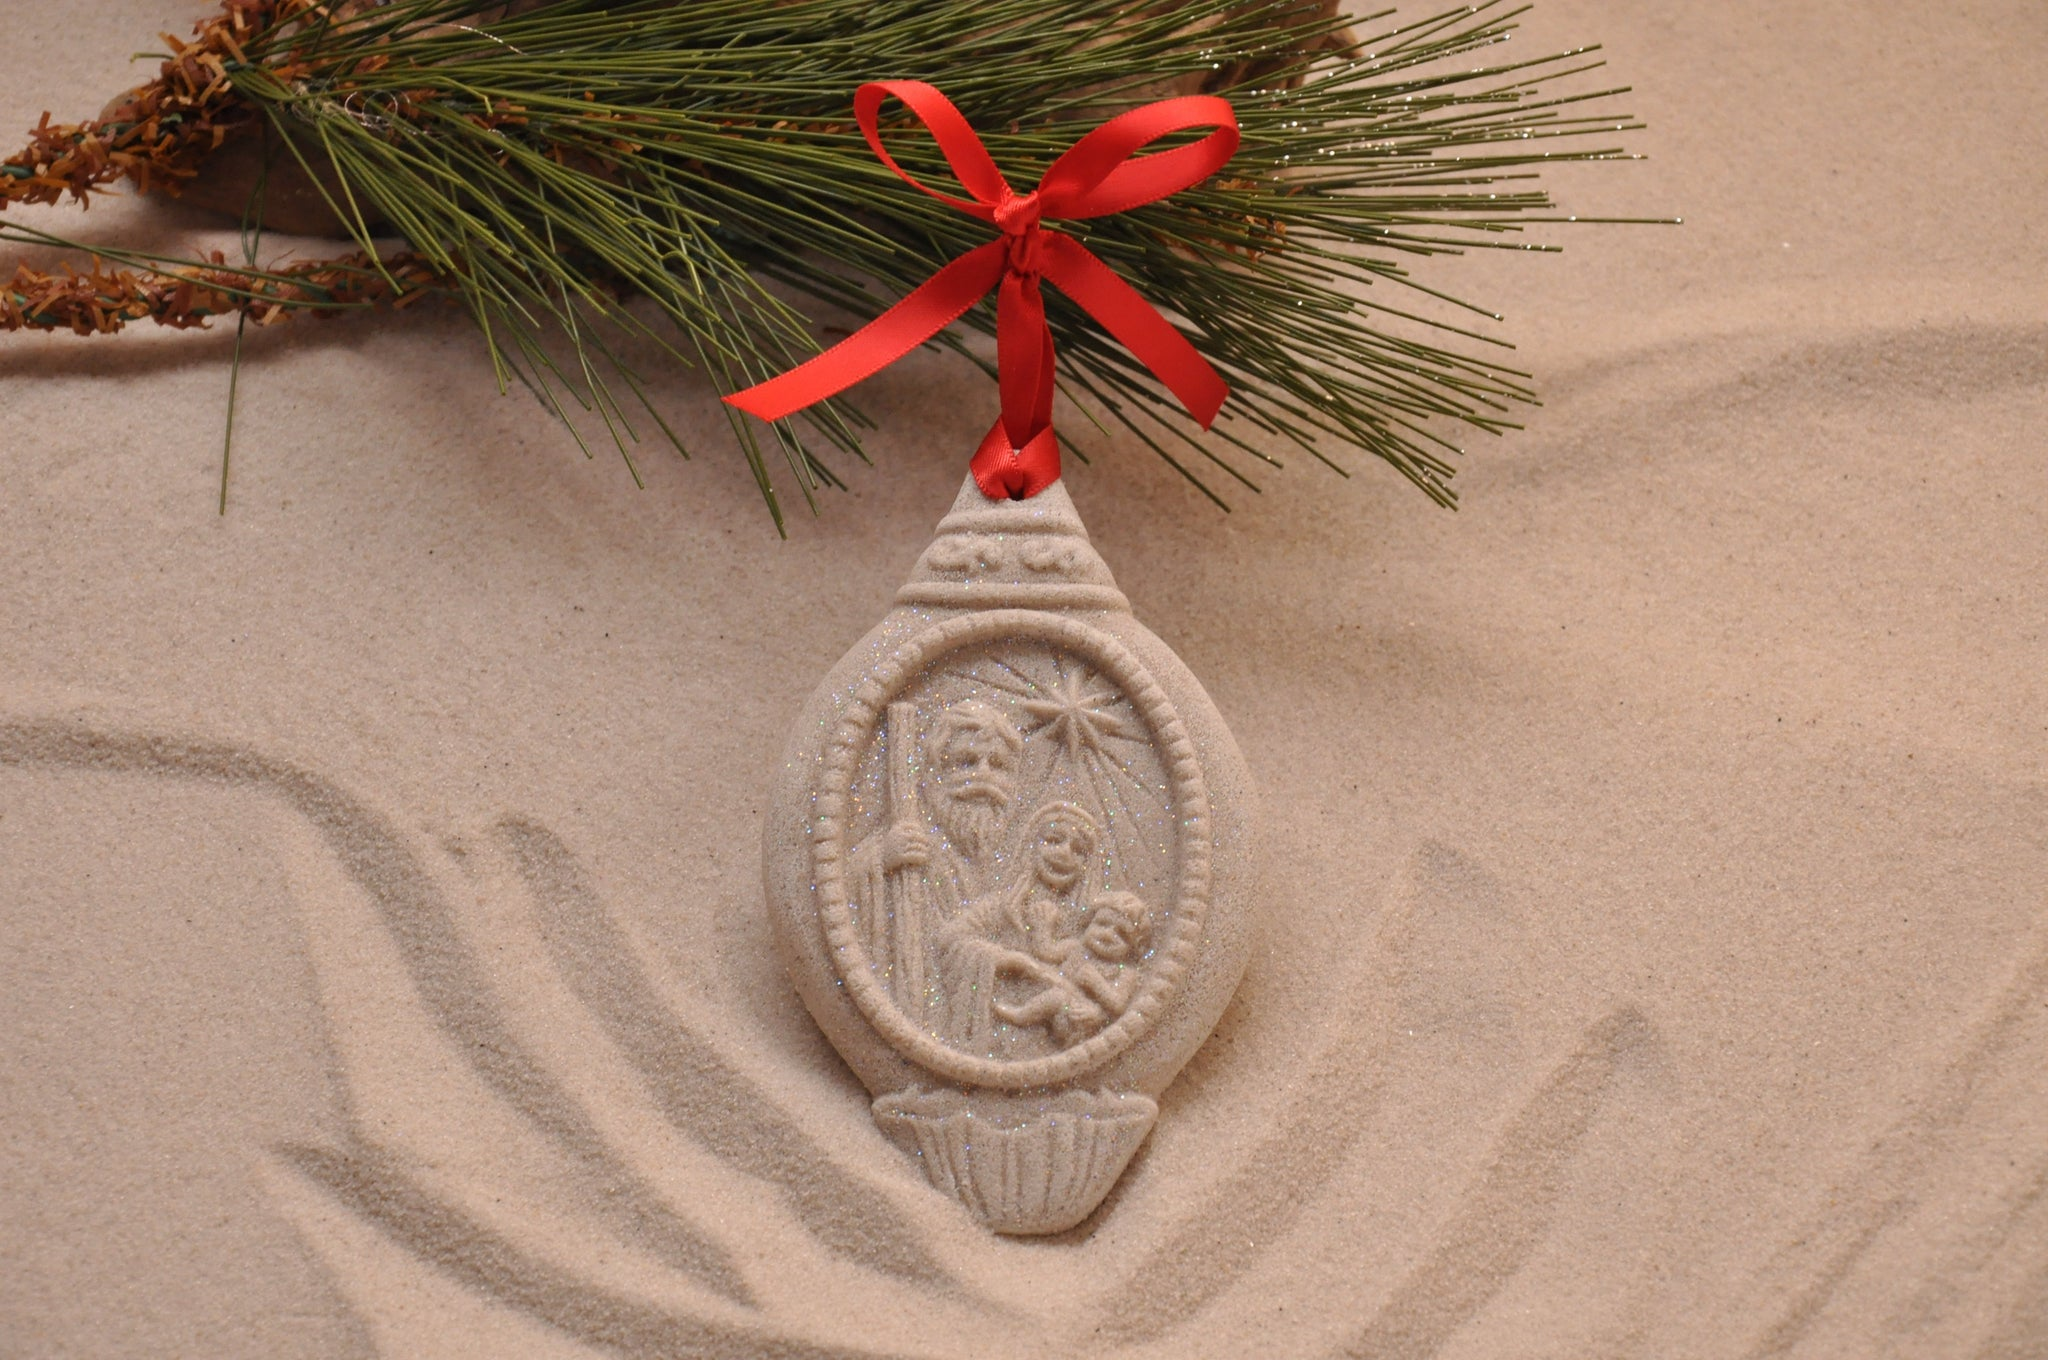 SAND ORNAMENT, CHRISTMAS TREE ORNAMENT, TROPICAL CHRISTMAS DECORATIONS, COASTAL ORNAMENT, SAND ORNAMENT, TROPICAL ORNAMENT, ARENOPHILE, SANTA, CHRISTMAS ORNAMENT, NATIVITY